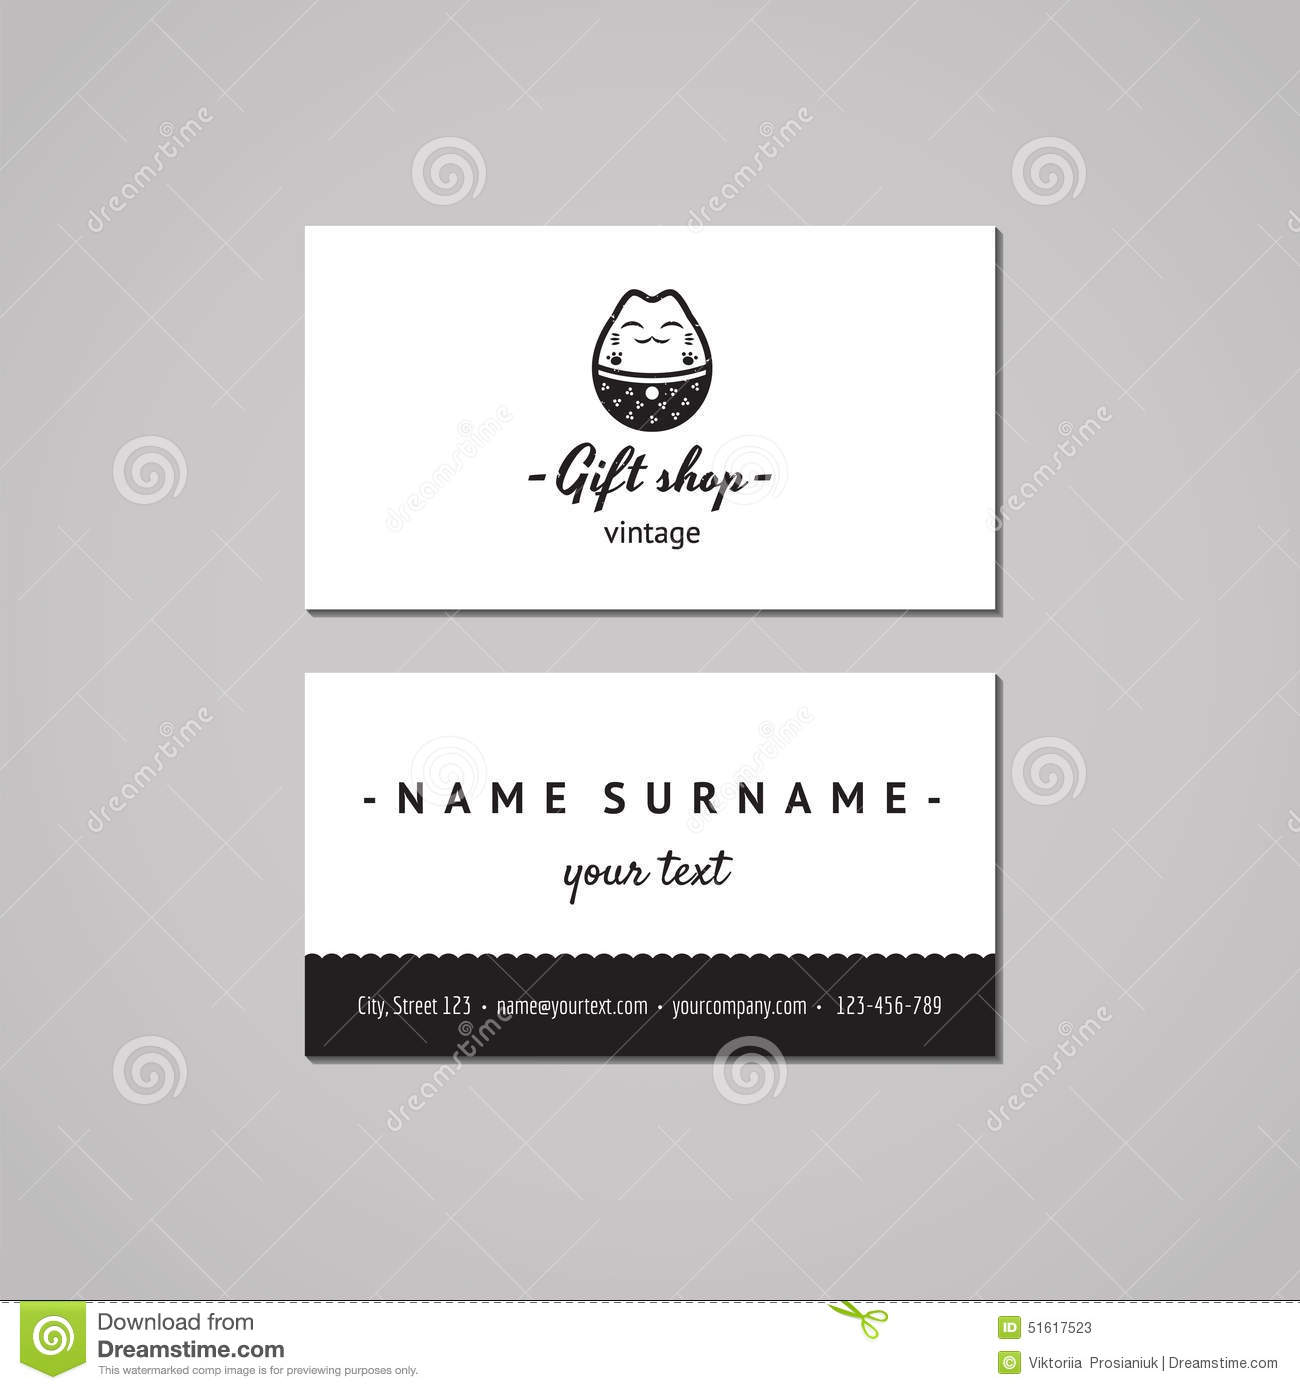 Gift shop and souvenirs business card design concept gift shop gift shop and souvenirs business card design concept gift shop logo with japanese cat vintage hipster and retro style reheart Images